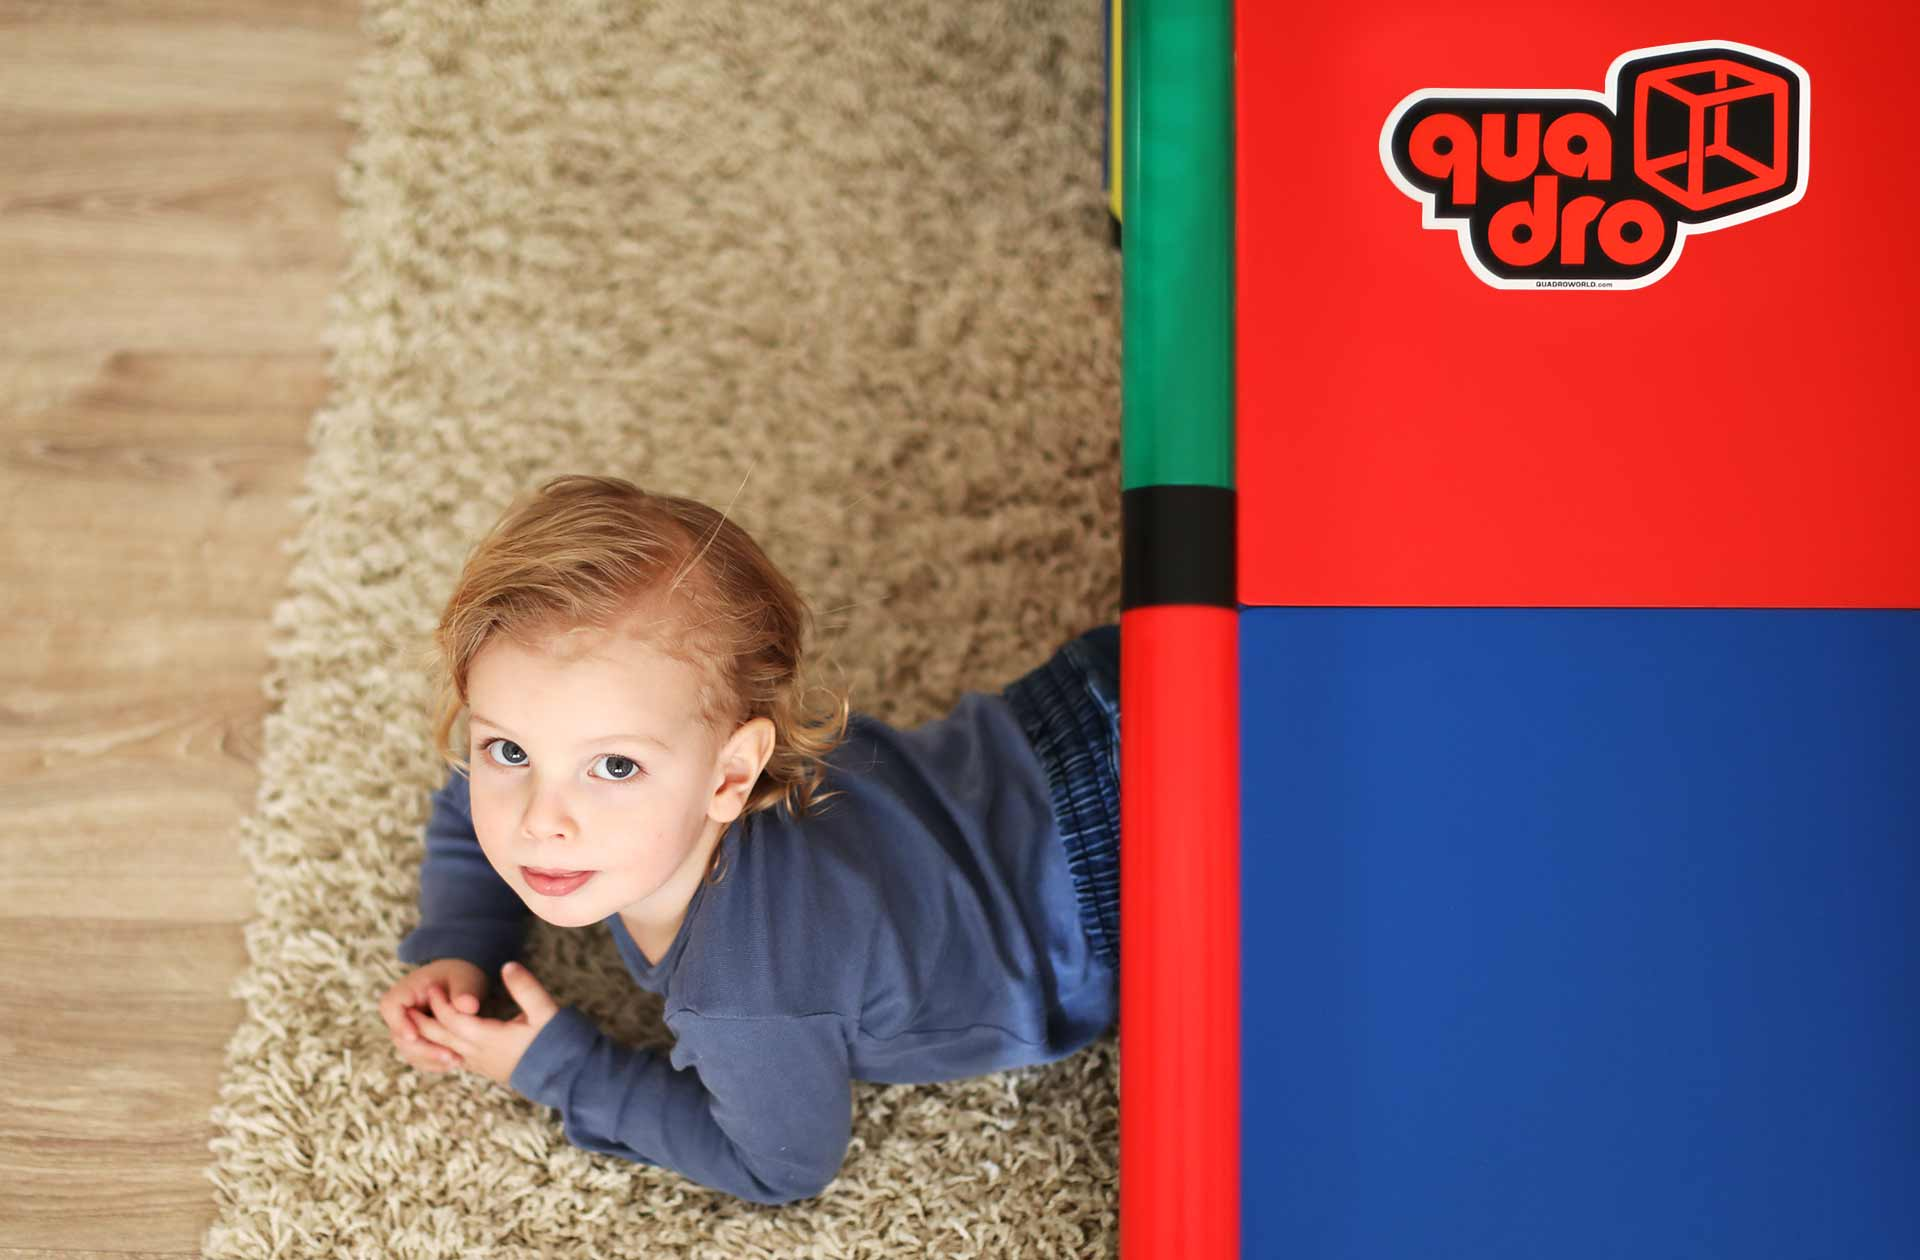 Little girl crawling under QUADRO playset in living room